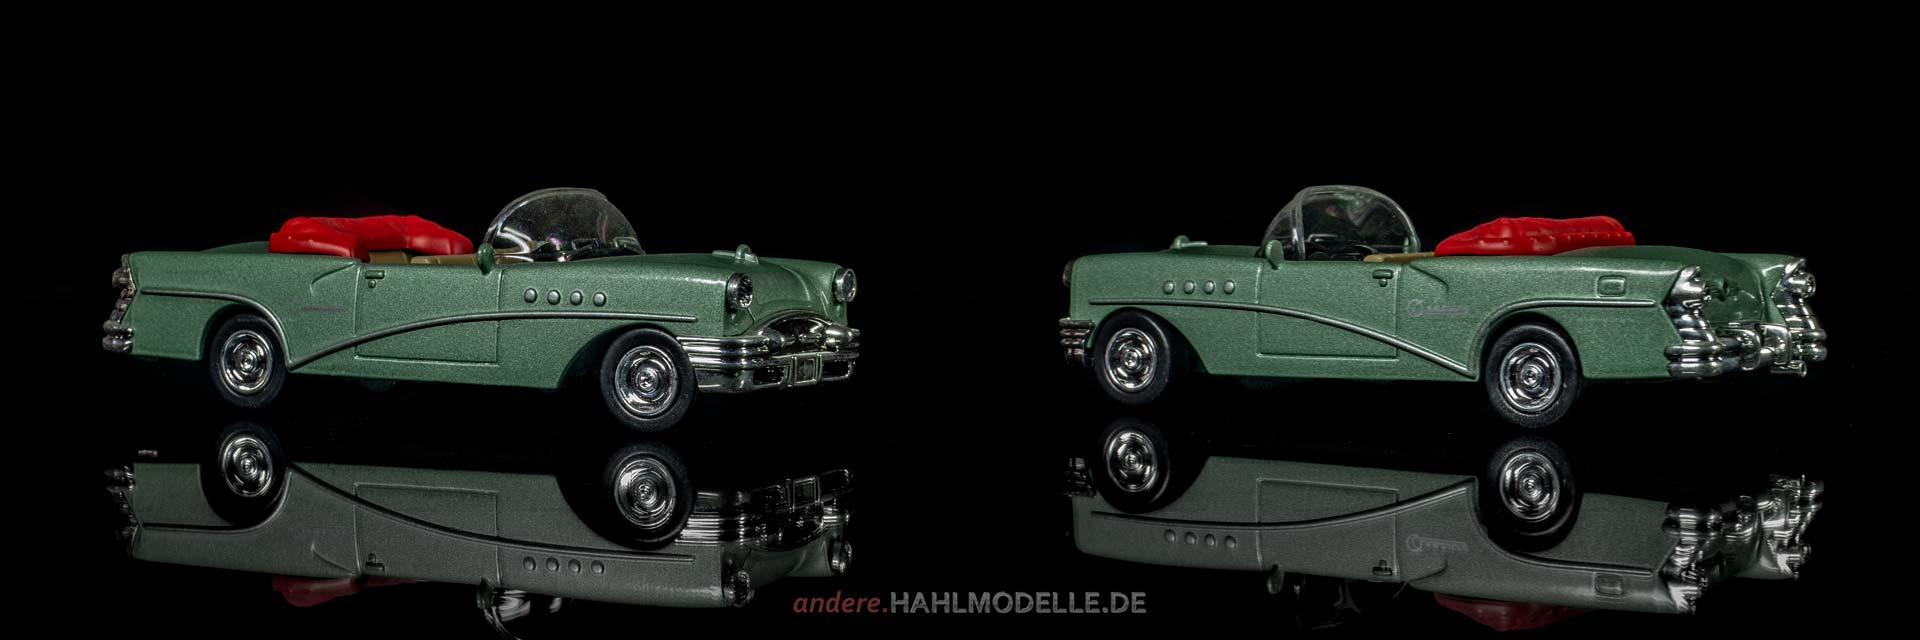 Buick Century Convertible | Cabriolet | New Ray | 1:43 | www.andere.hahlmodelle.de